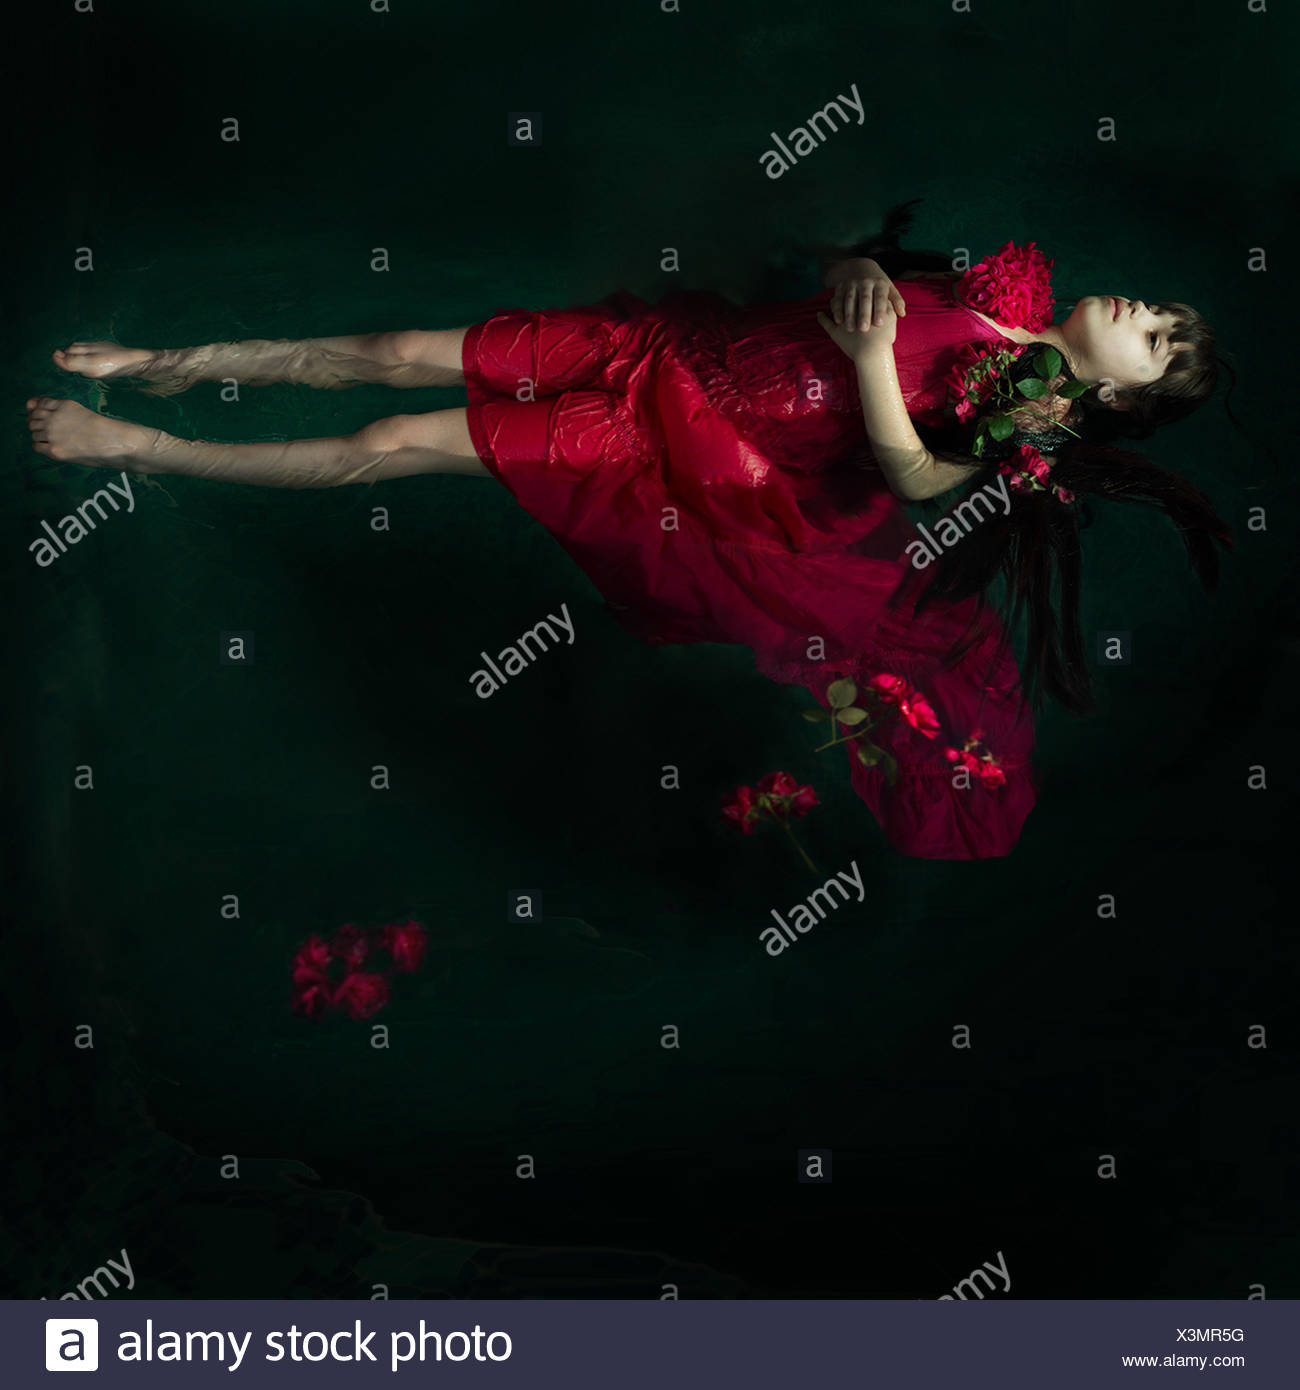 Girl in a red dress floating in water with red roses - Stock Image